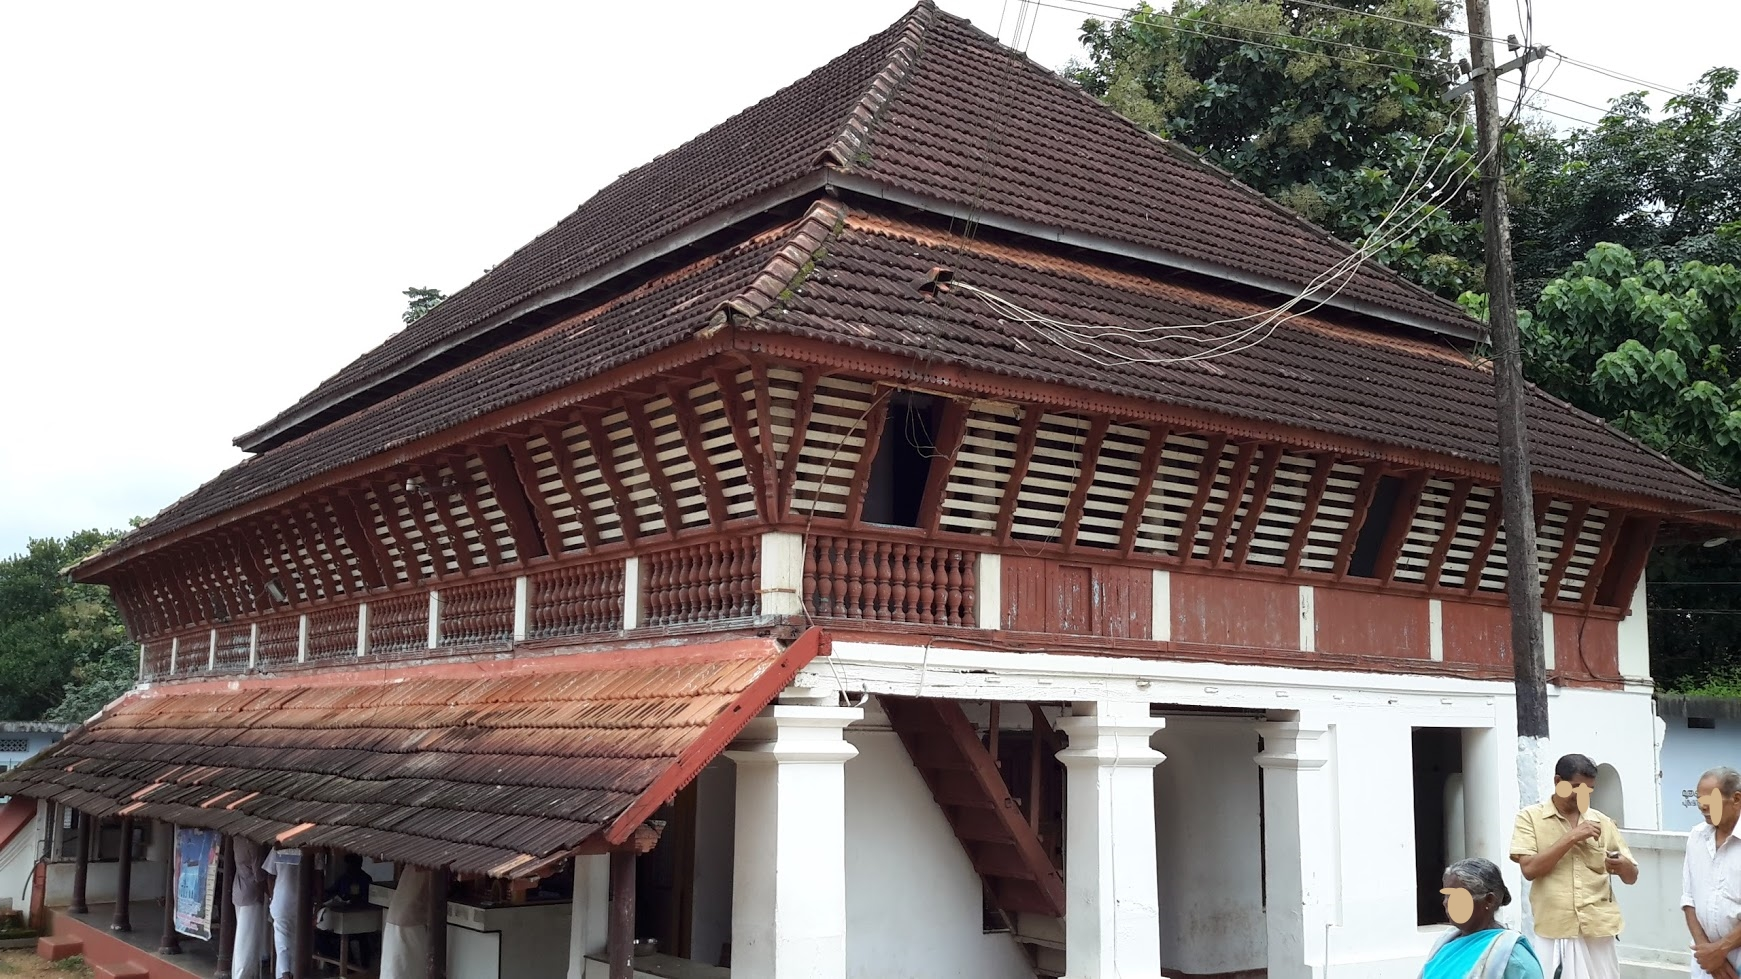 Architecture of Kerala - Wikipedia